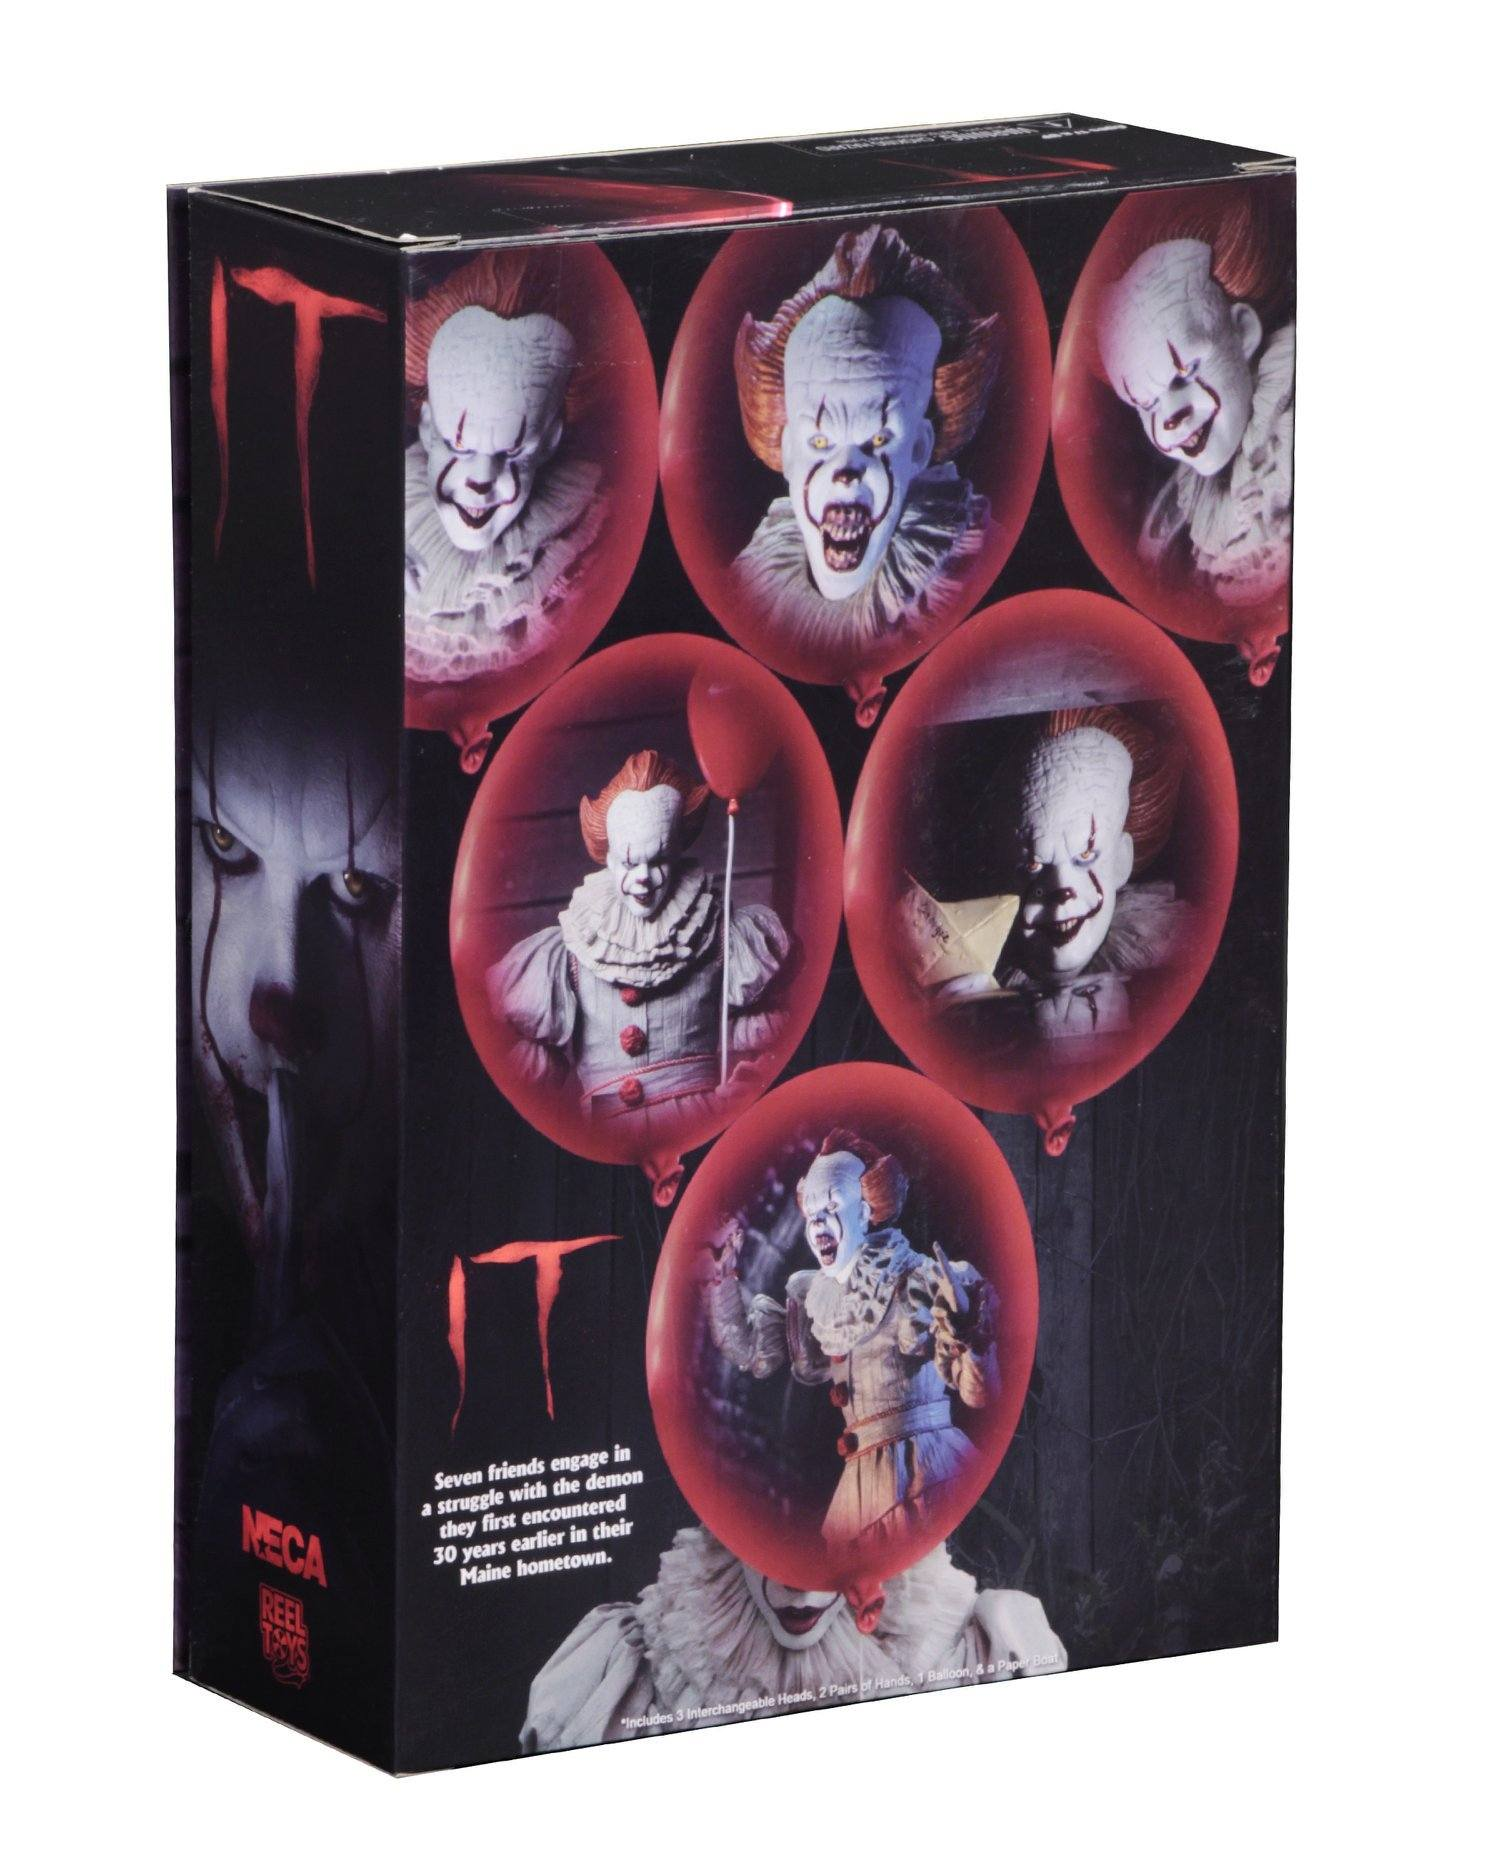 Neca Pennywise Figure Boxed 2